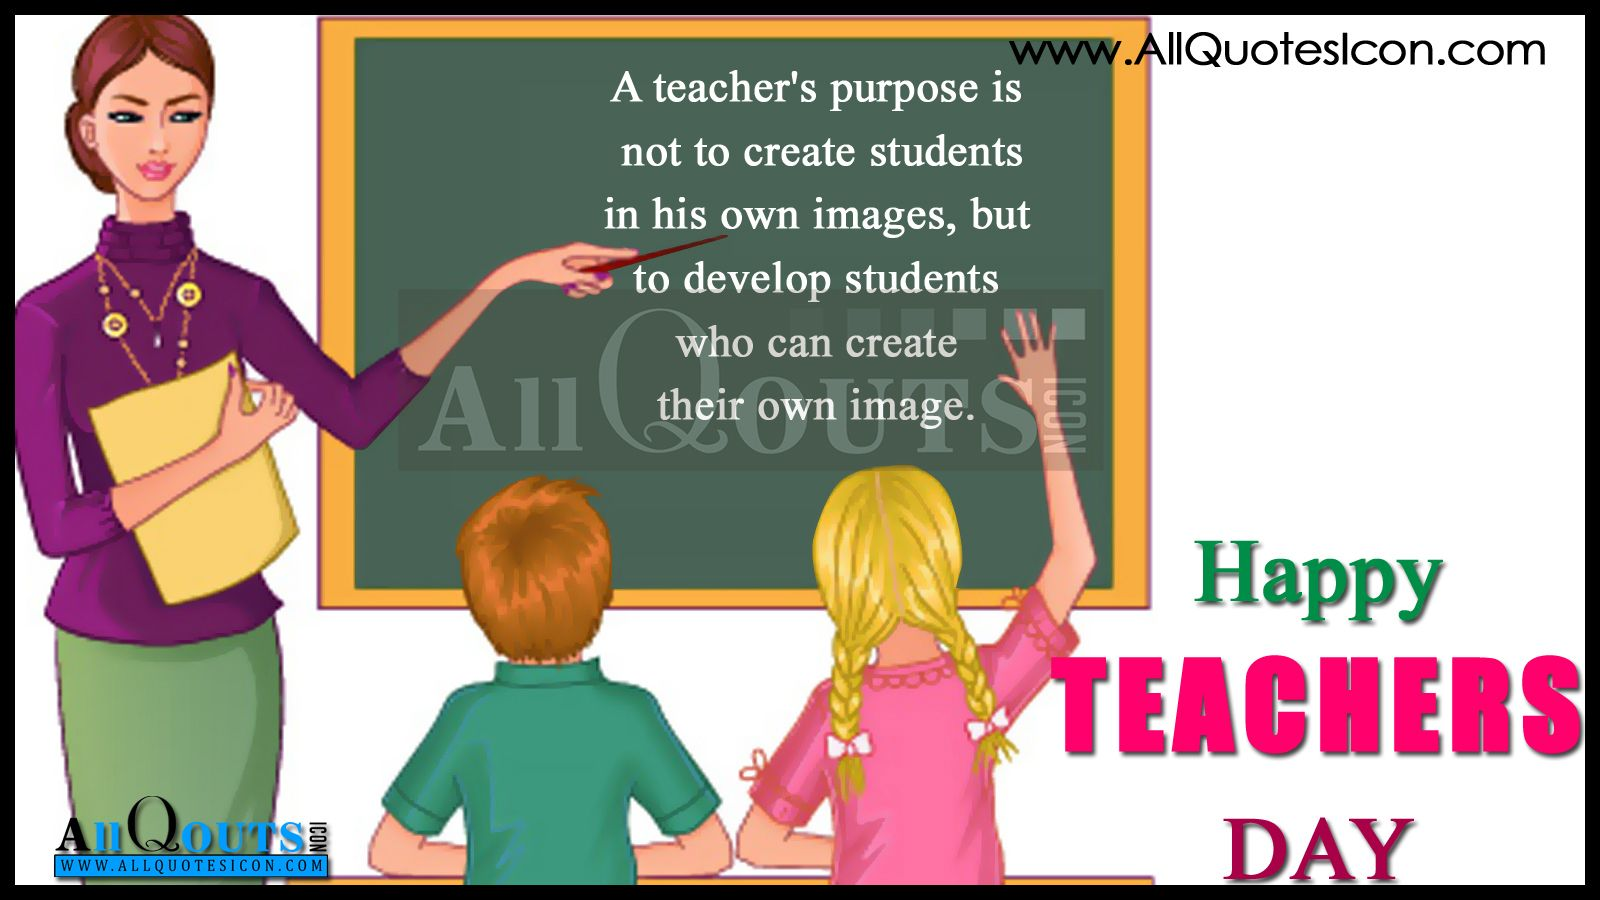 Teacher Day Messages Puzzles Pinterest Teachers Day Wishes